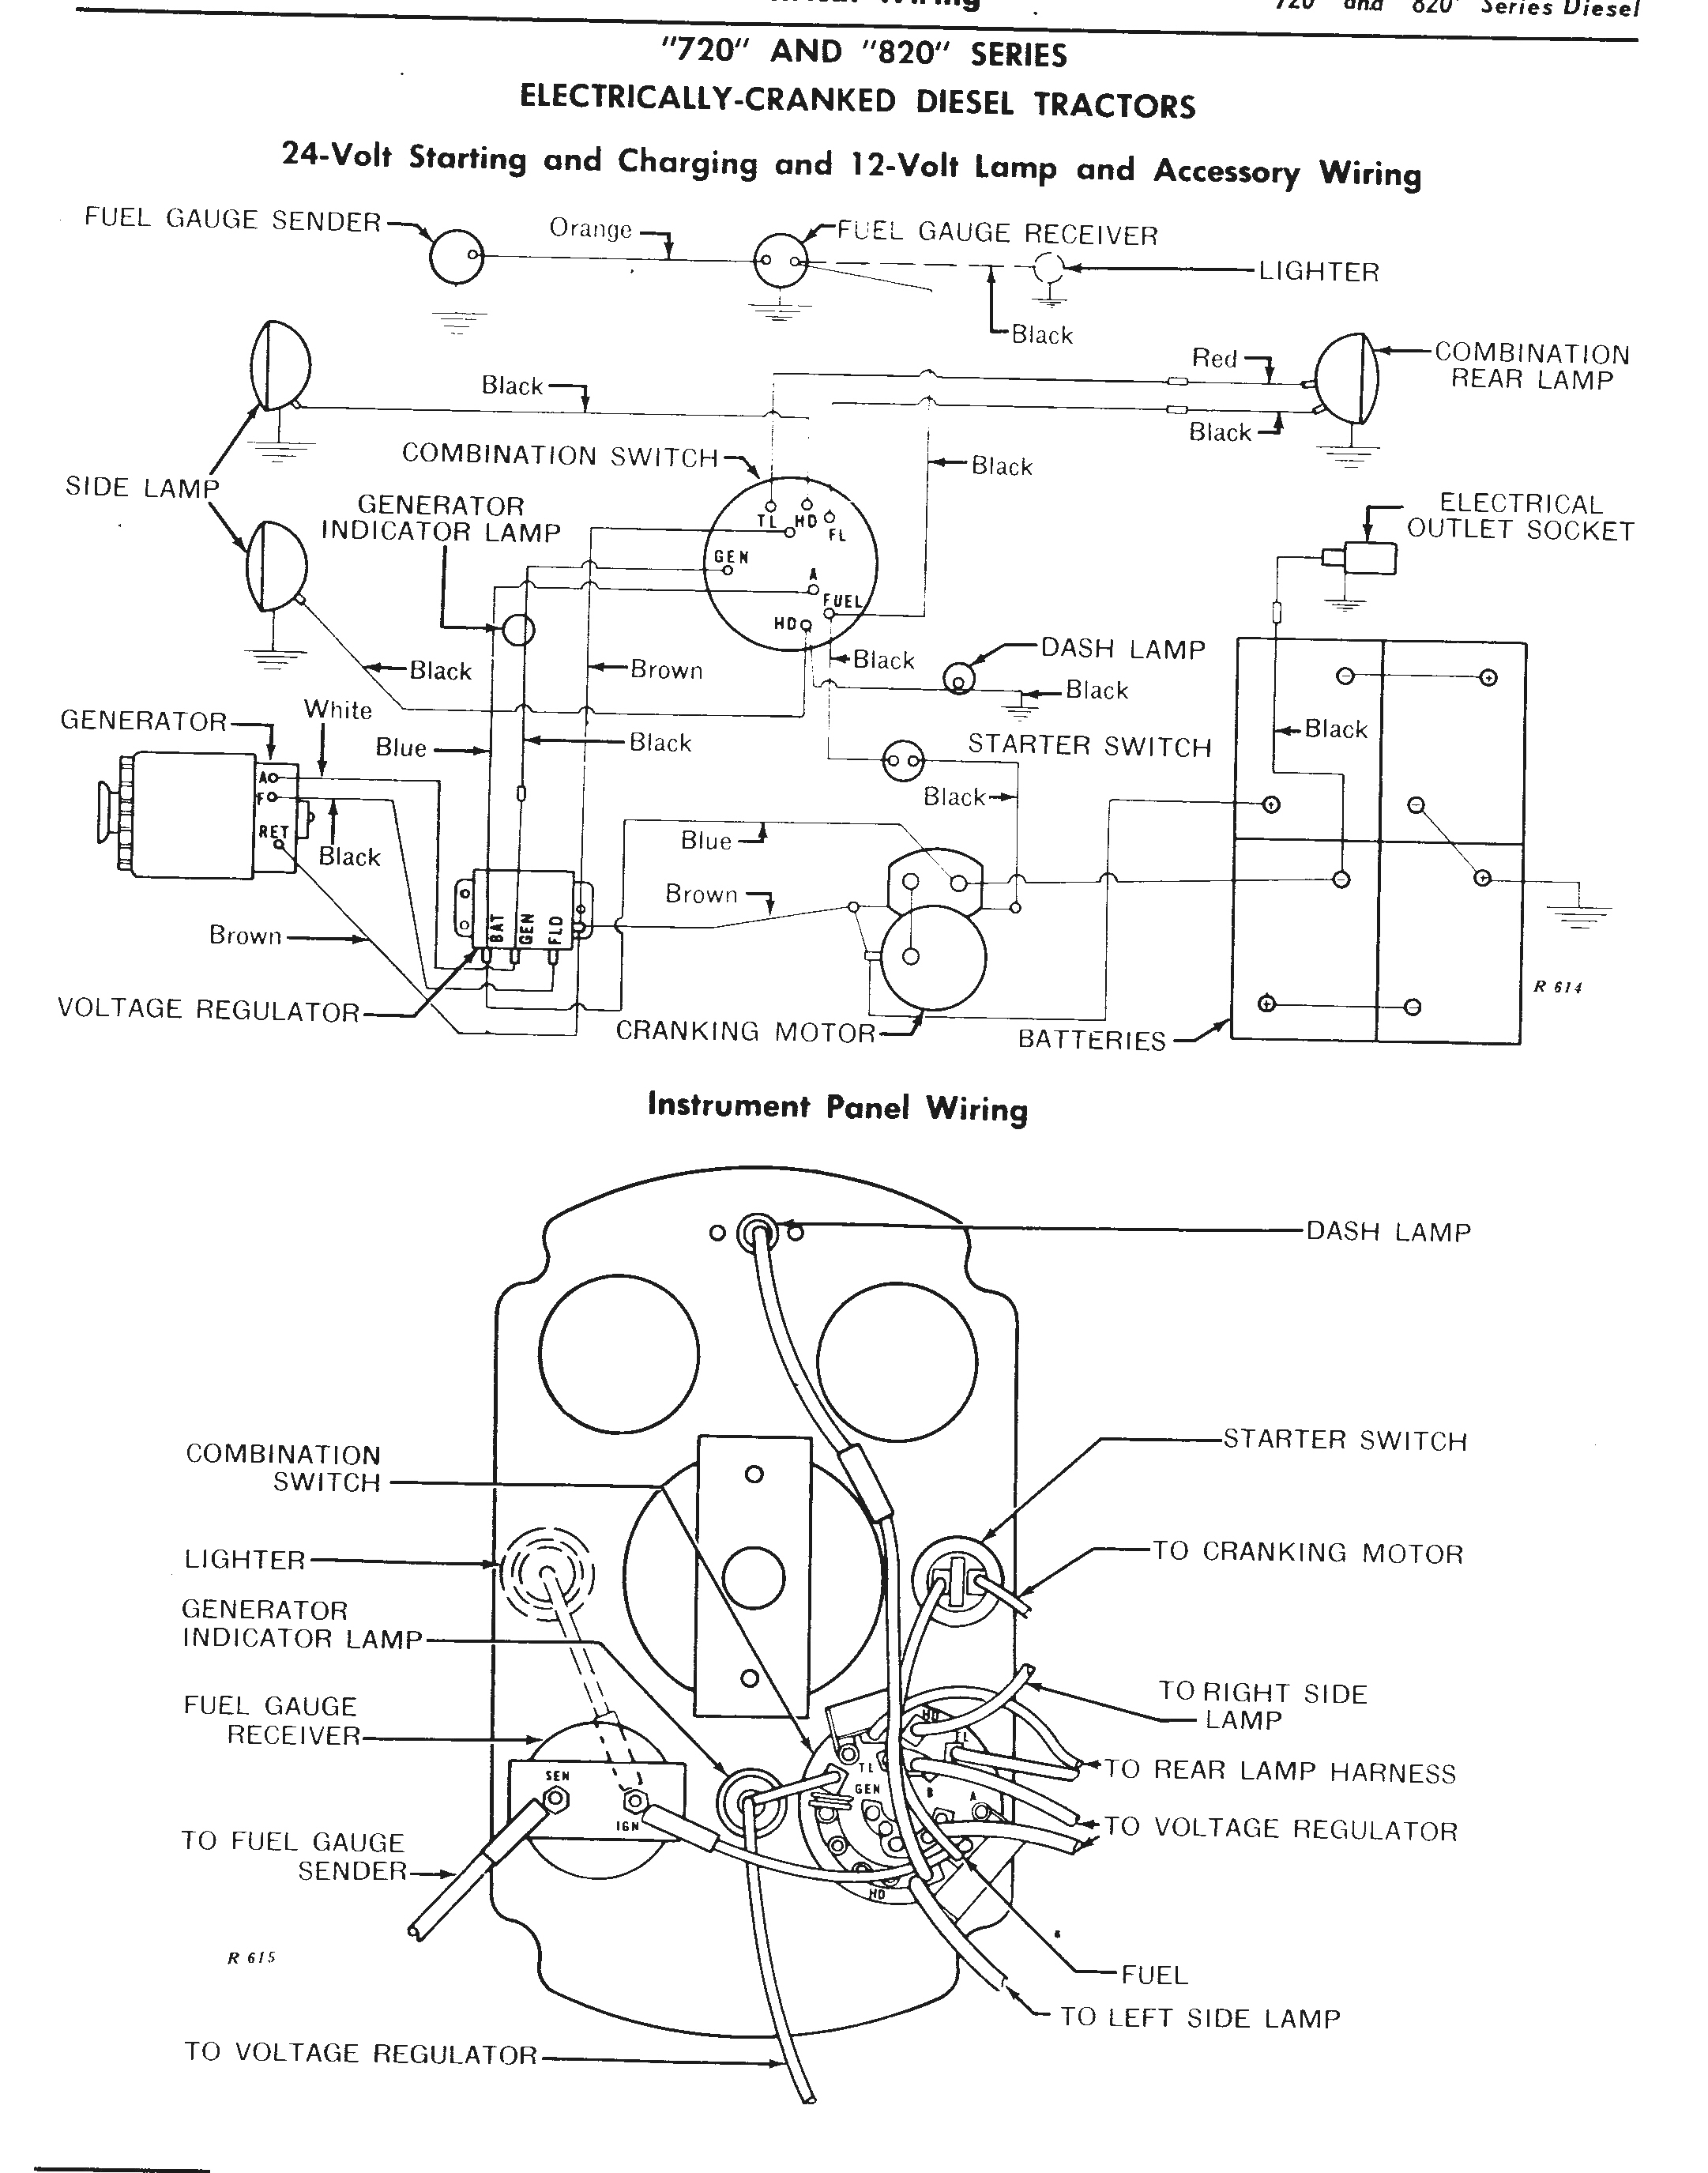 The John Deere 24 Volt Electrical System Explained 12 Solenoid Wiring Diagram 4 Post